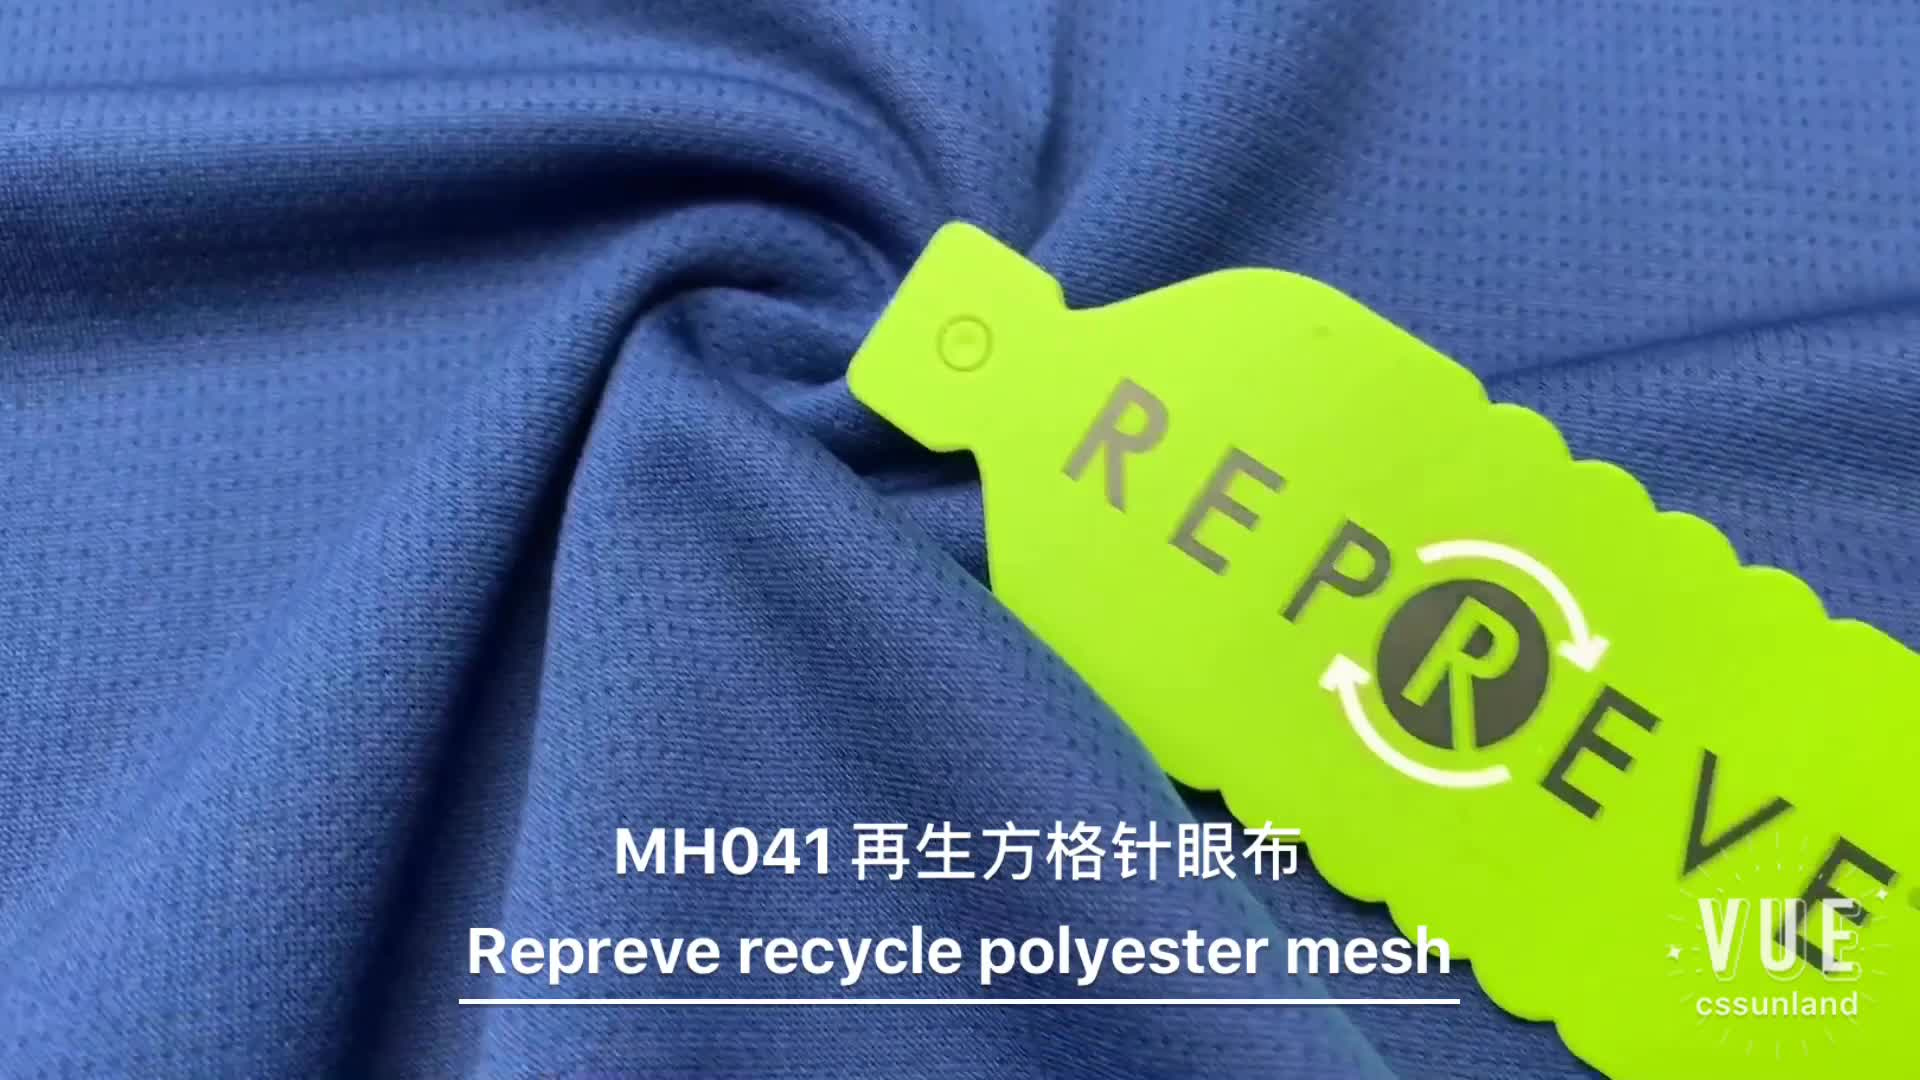 round neck sports training shirts clothing eco-friendly bottle recycle polyester repreve DTY knitting birdeye mesh fabric